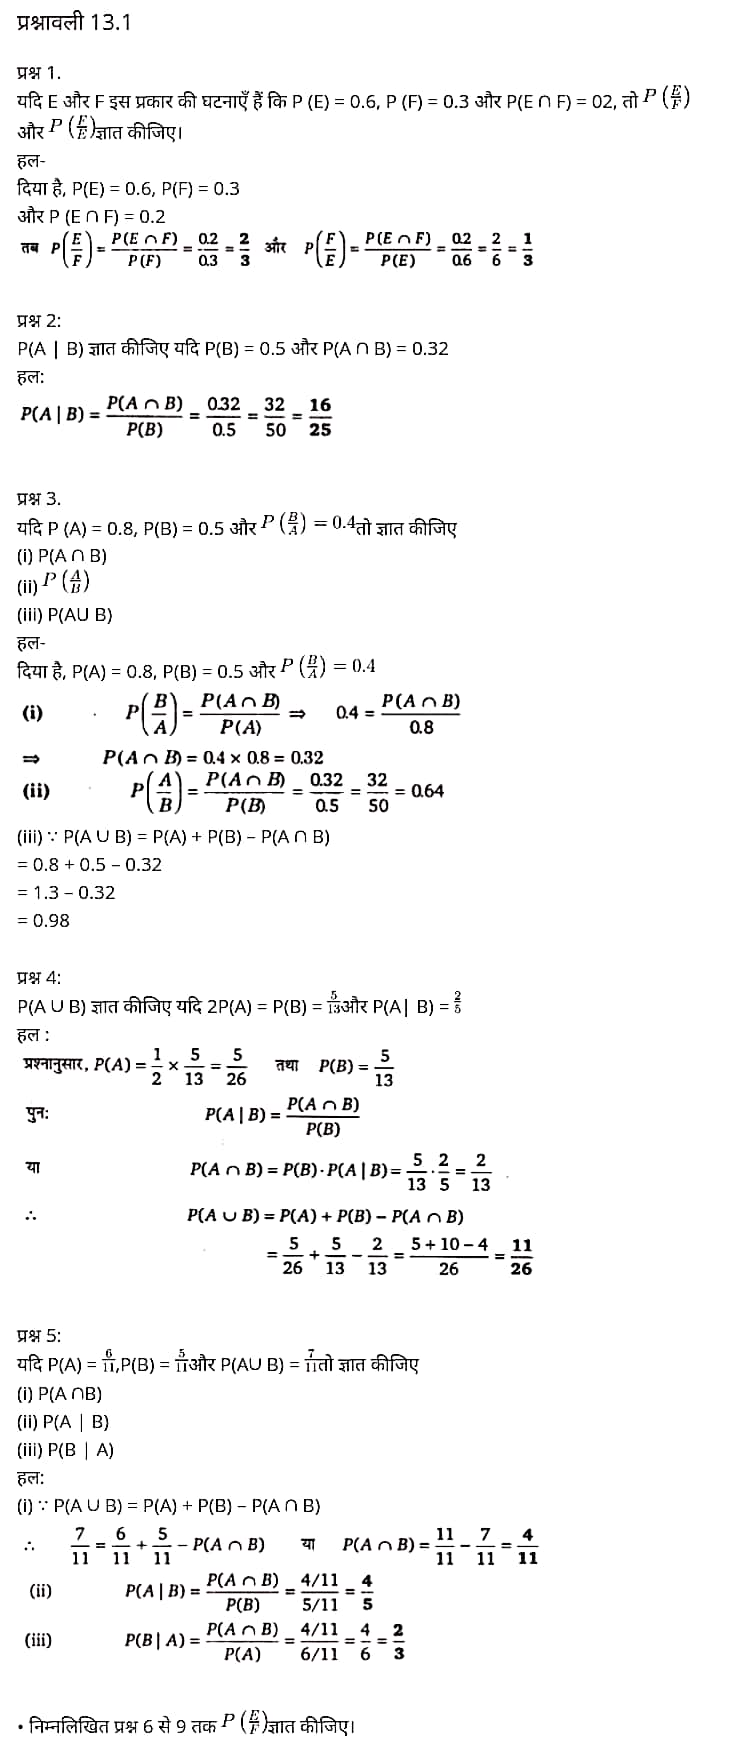 "UP Board Solutions for ""Class 12 Maths Chapter 13"" ""Probability"